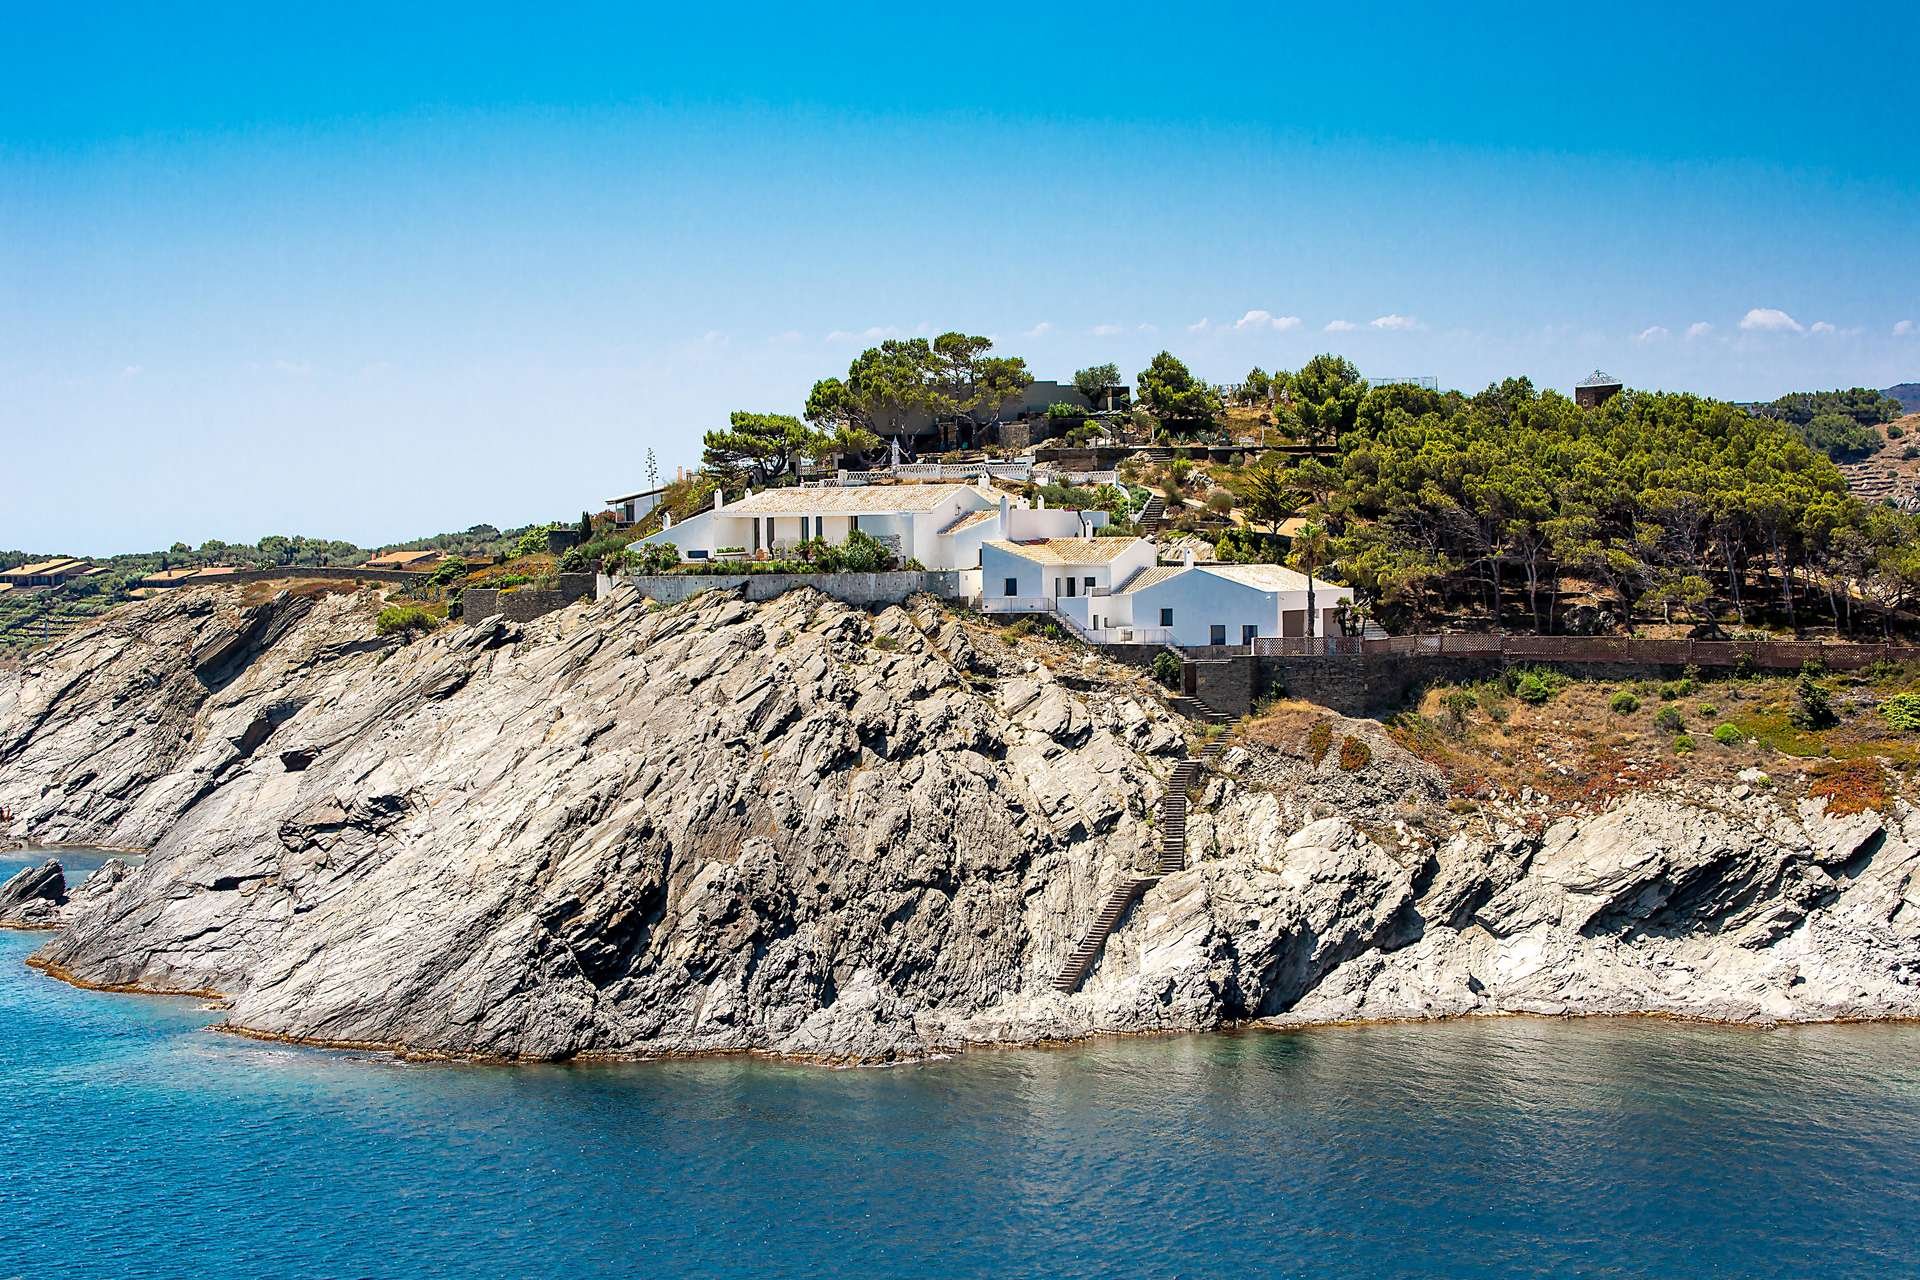 Luxury vacation rentals europe - Spain - Cadaques - No location 4 - Villa Dali - Image 1/25